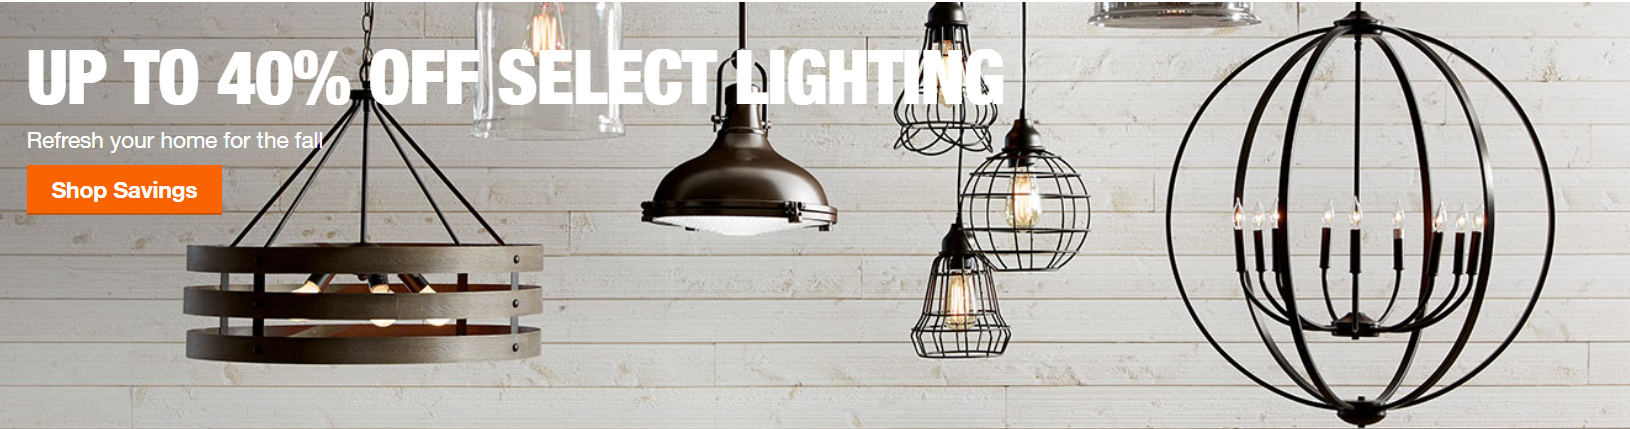 Home Depot – Up To 40% Off Select Lighting